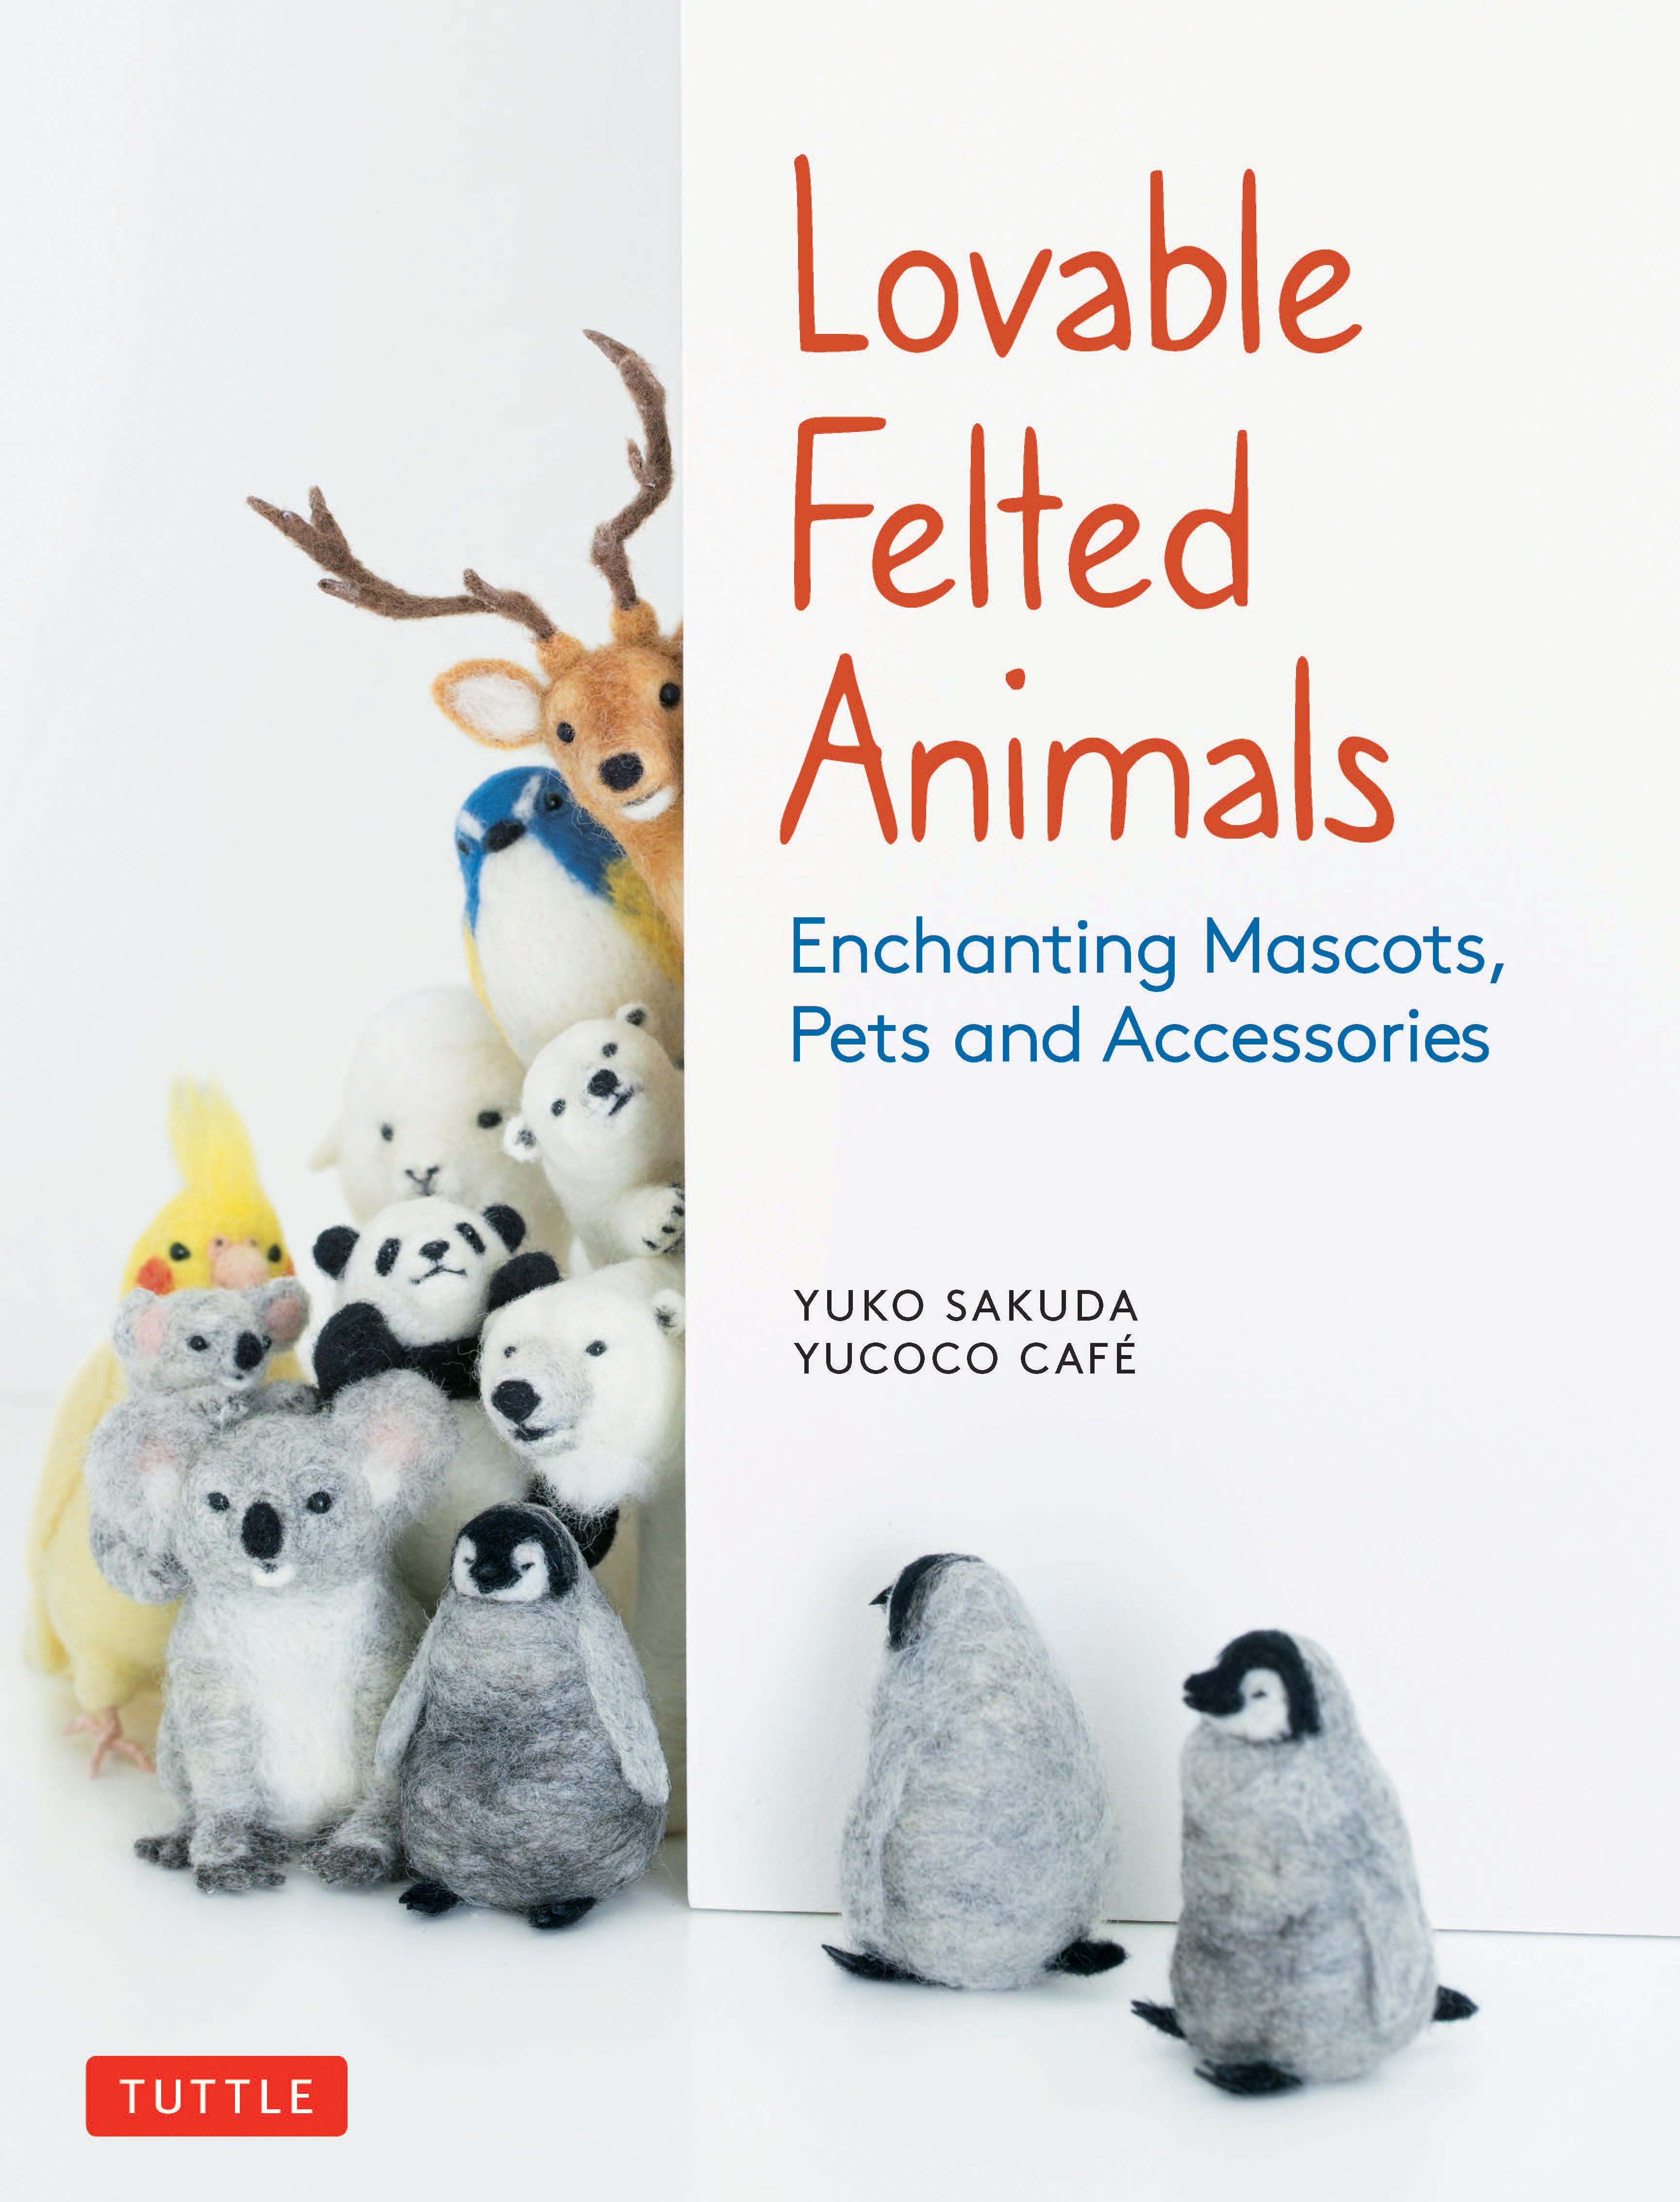 Lovable Felted Animals Enchanting Mascots, Pets and Accessories